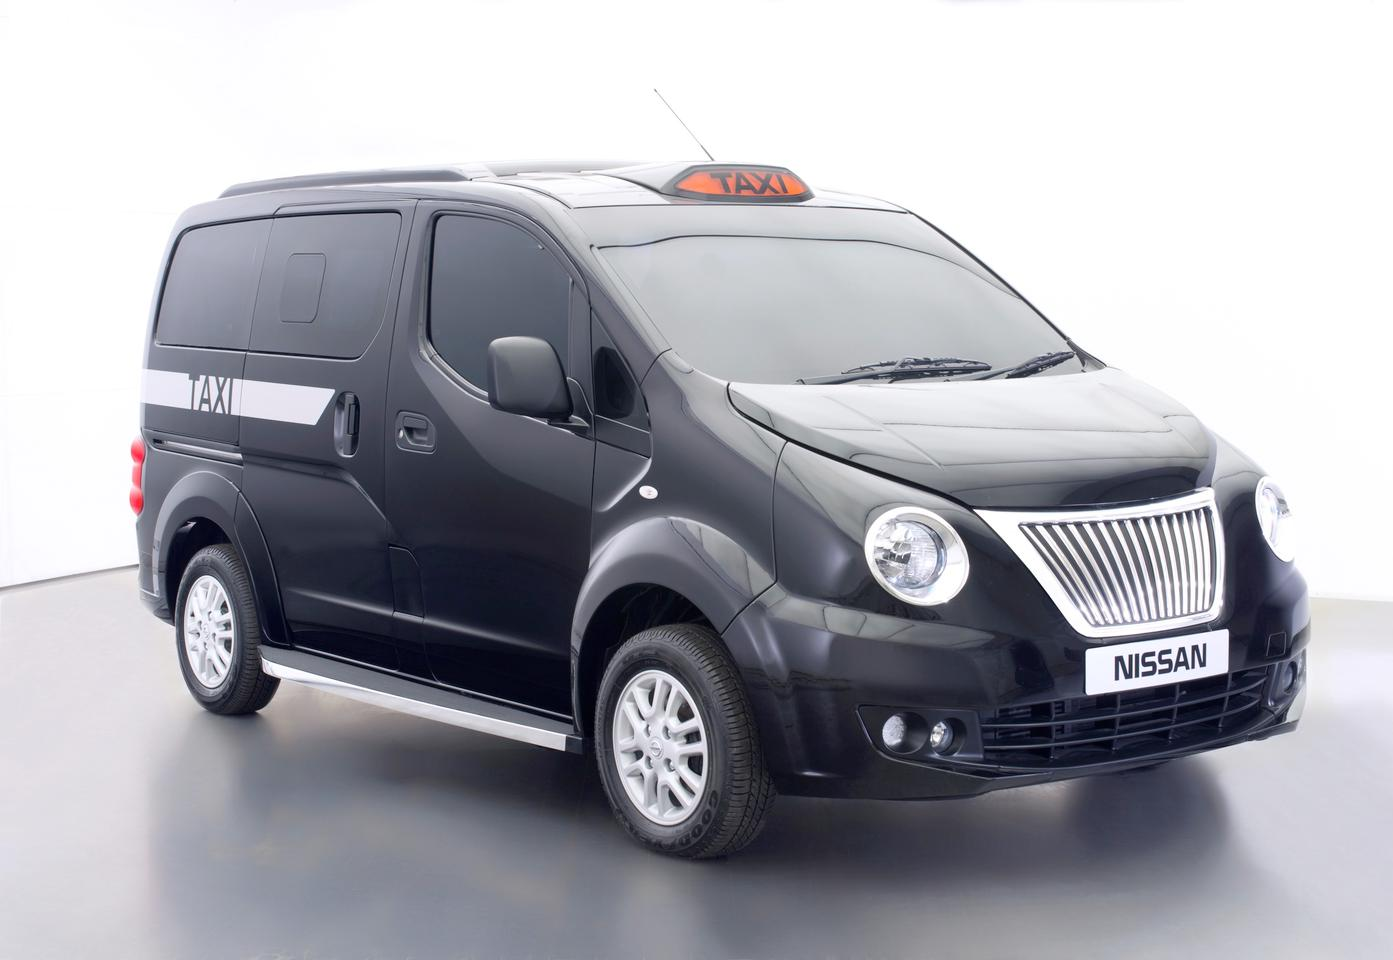 The Nissan Taxi for London was designed by Nissan Design Europe (NDE) in Paddington